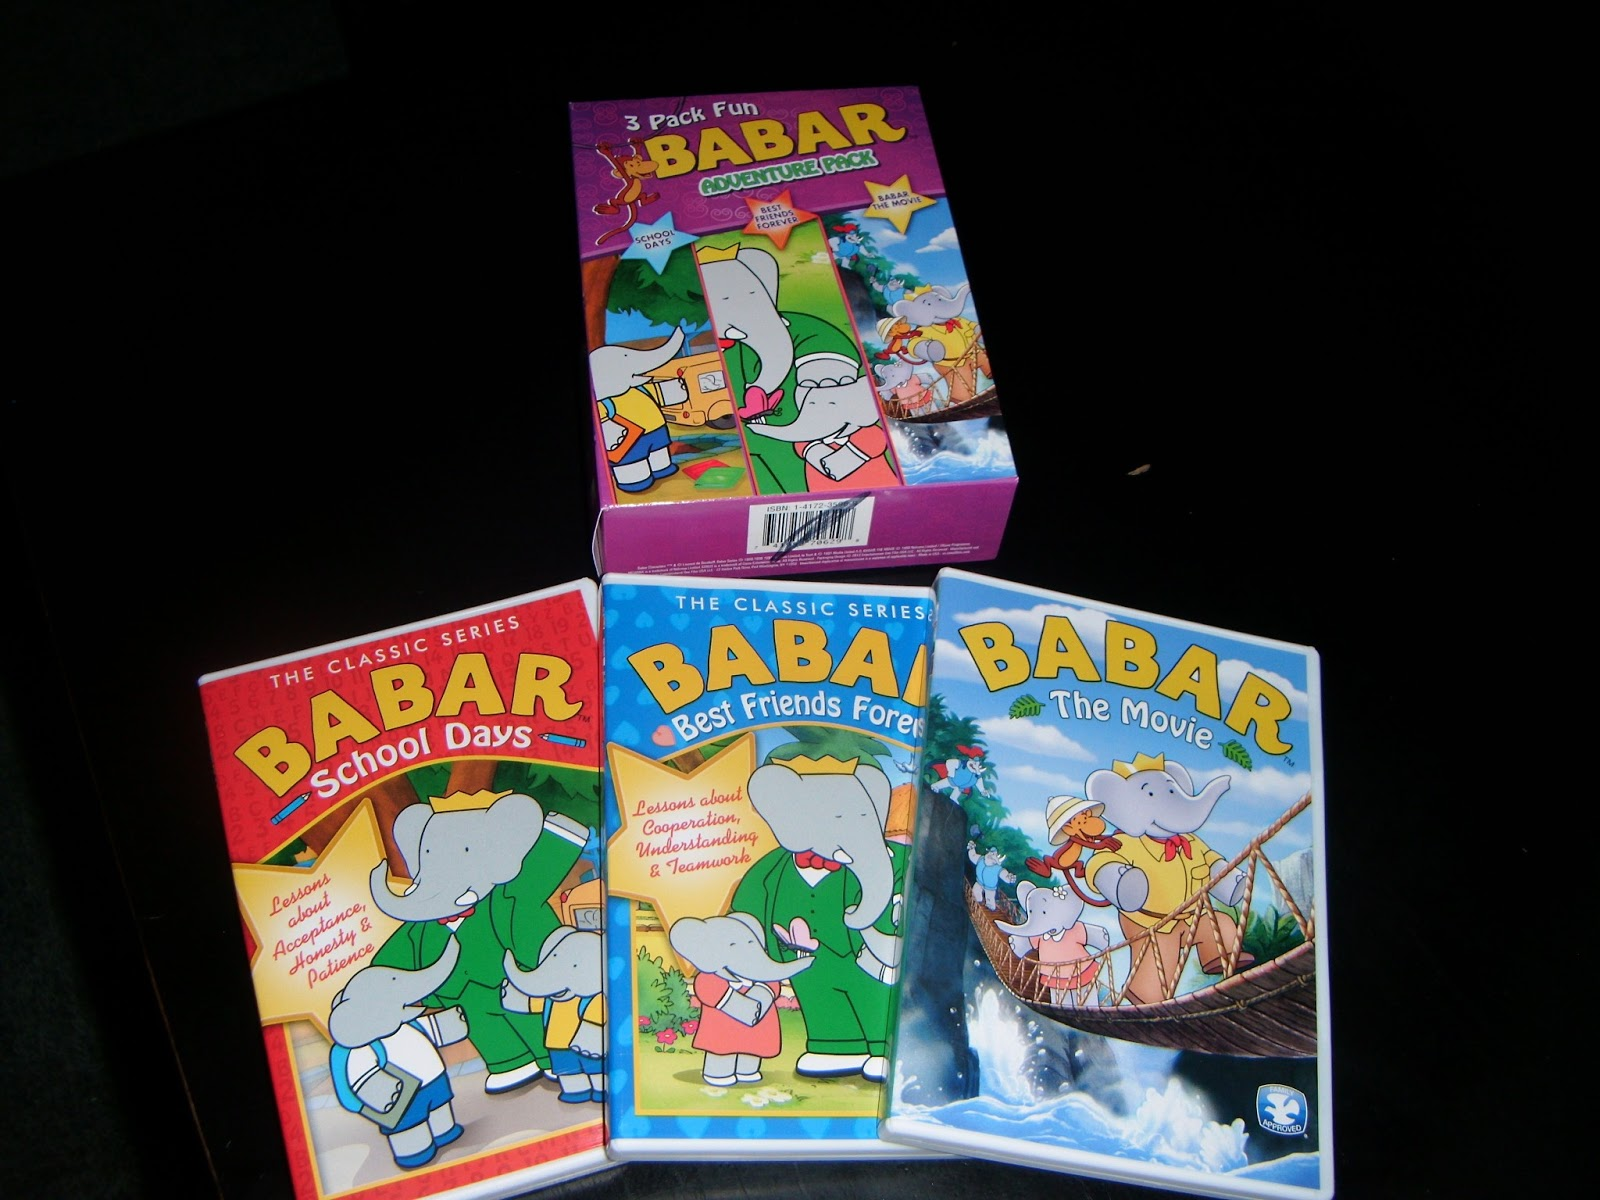 the abcd diaries babar adventure pack 3 dvd set. Black Bedroom Furniture Sets. Home Design Ideas